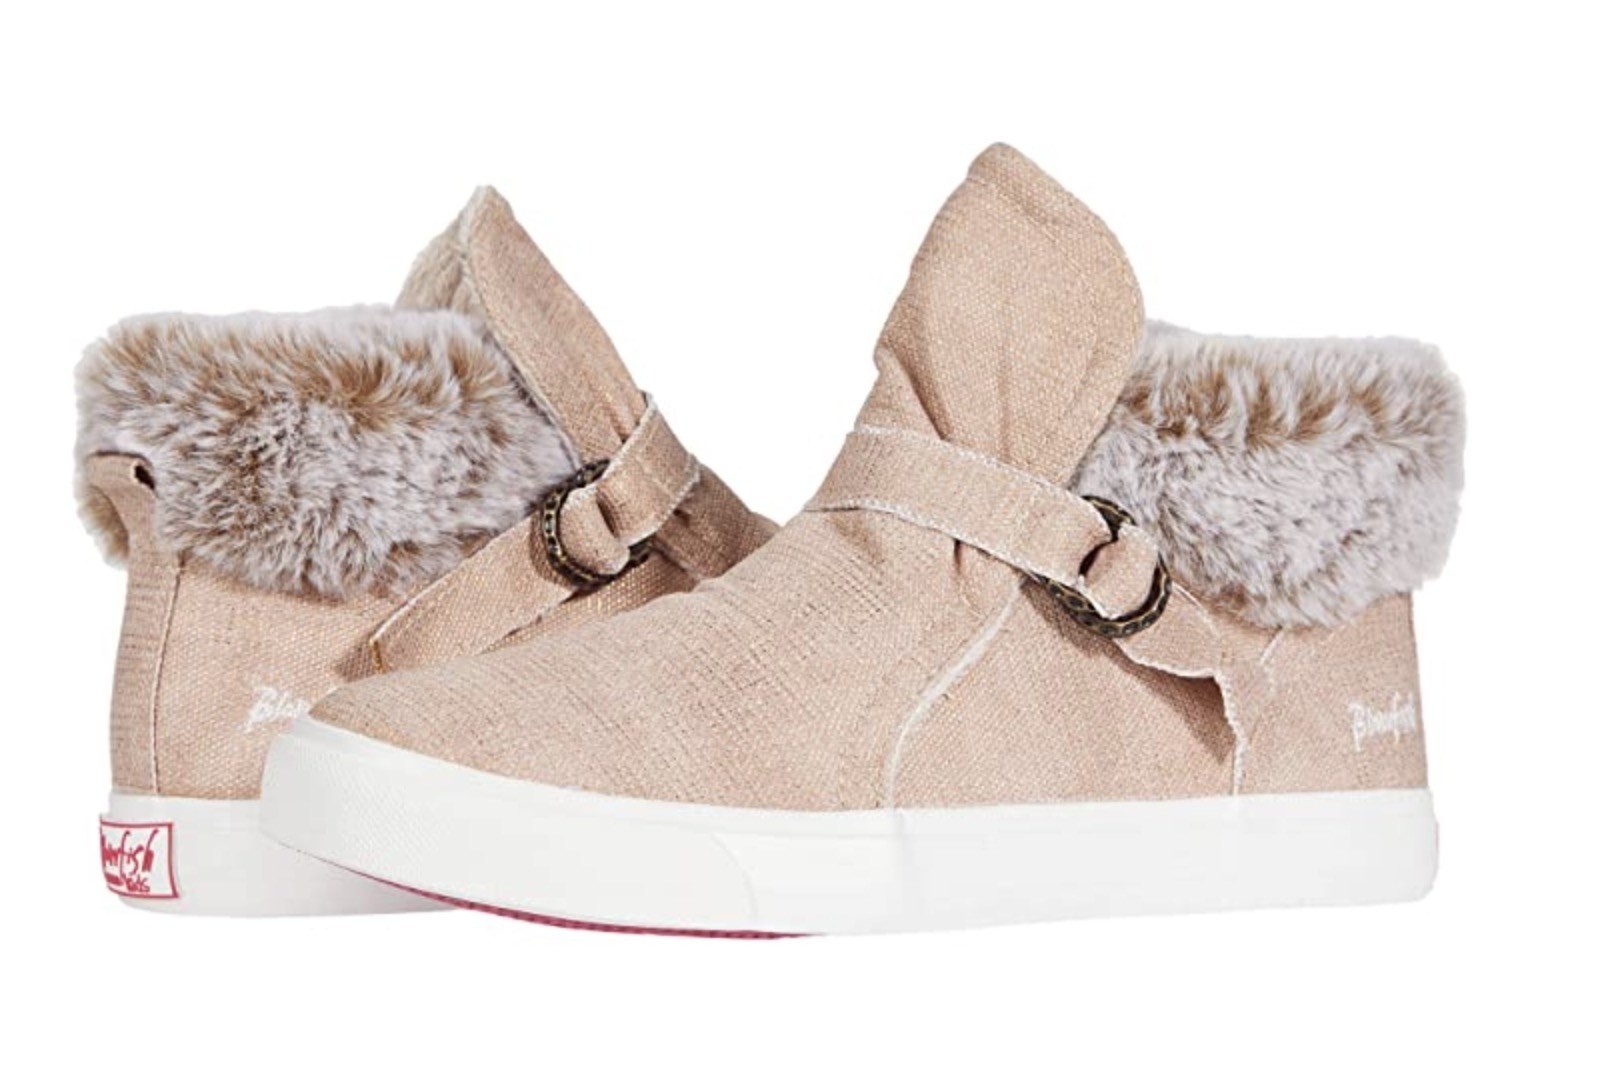 tan sneakers with faux fur on the inside